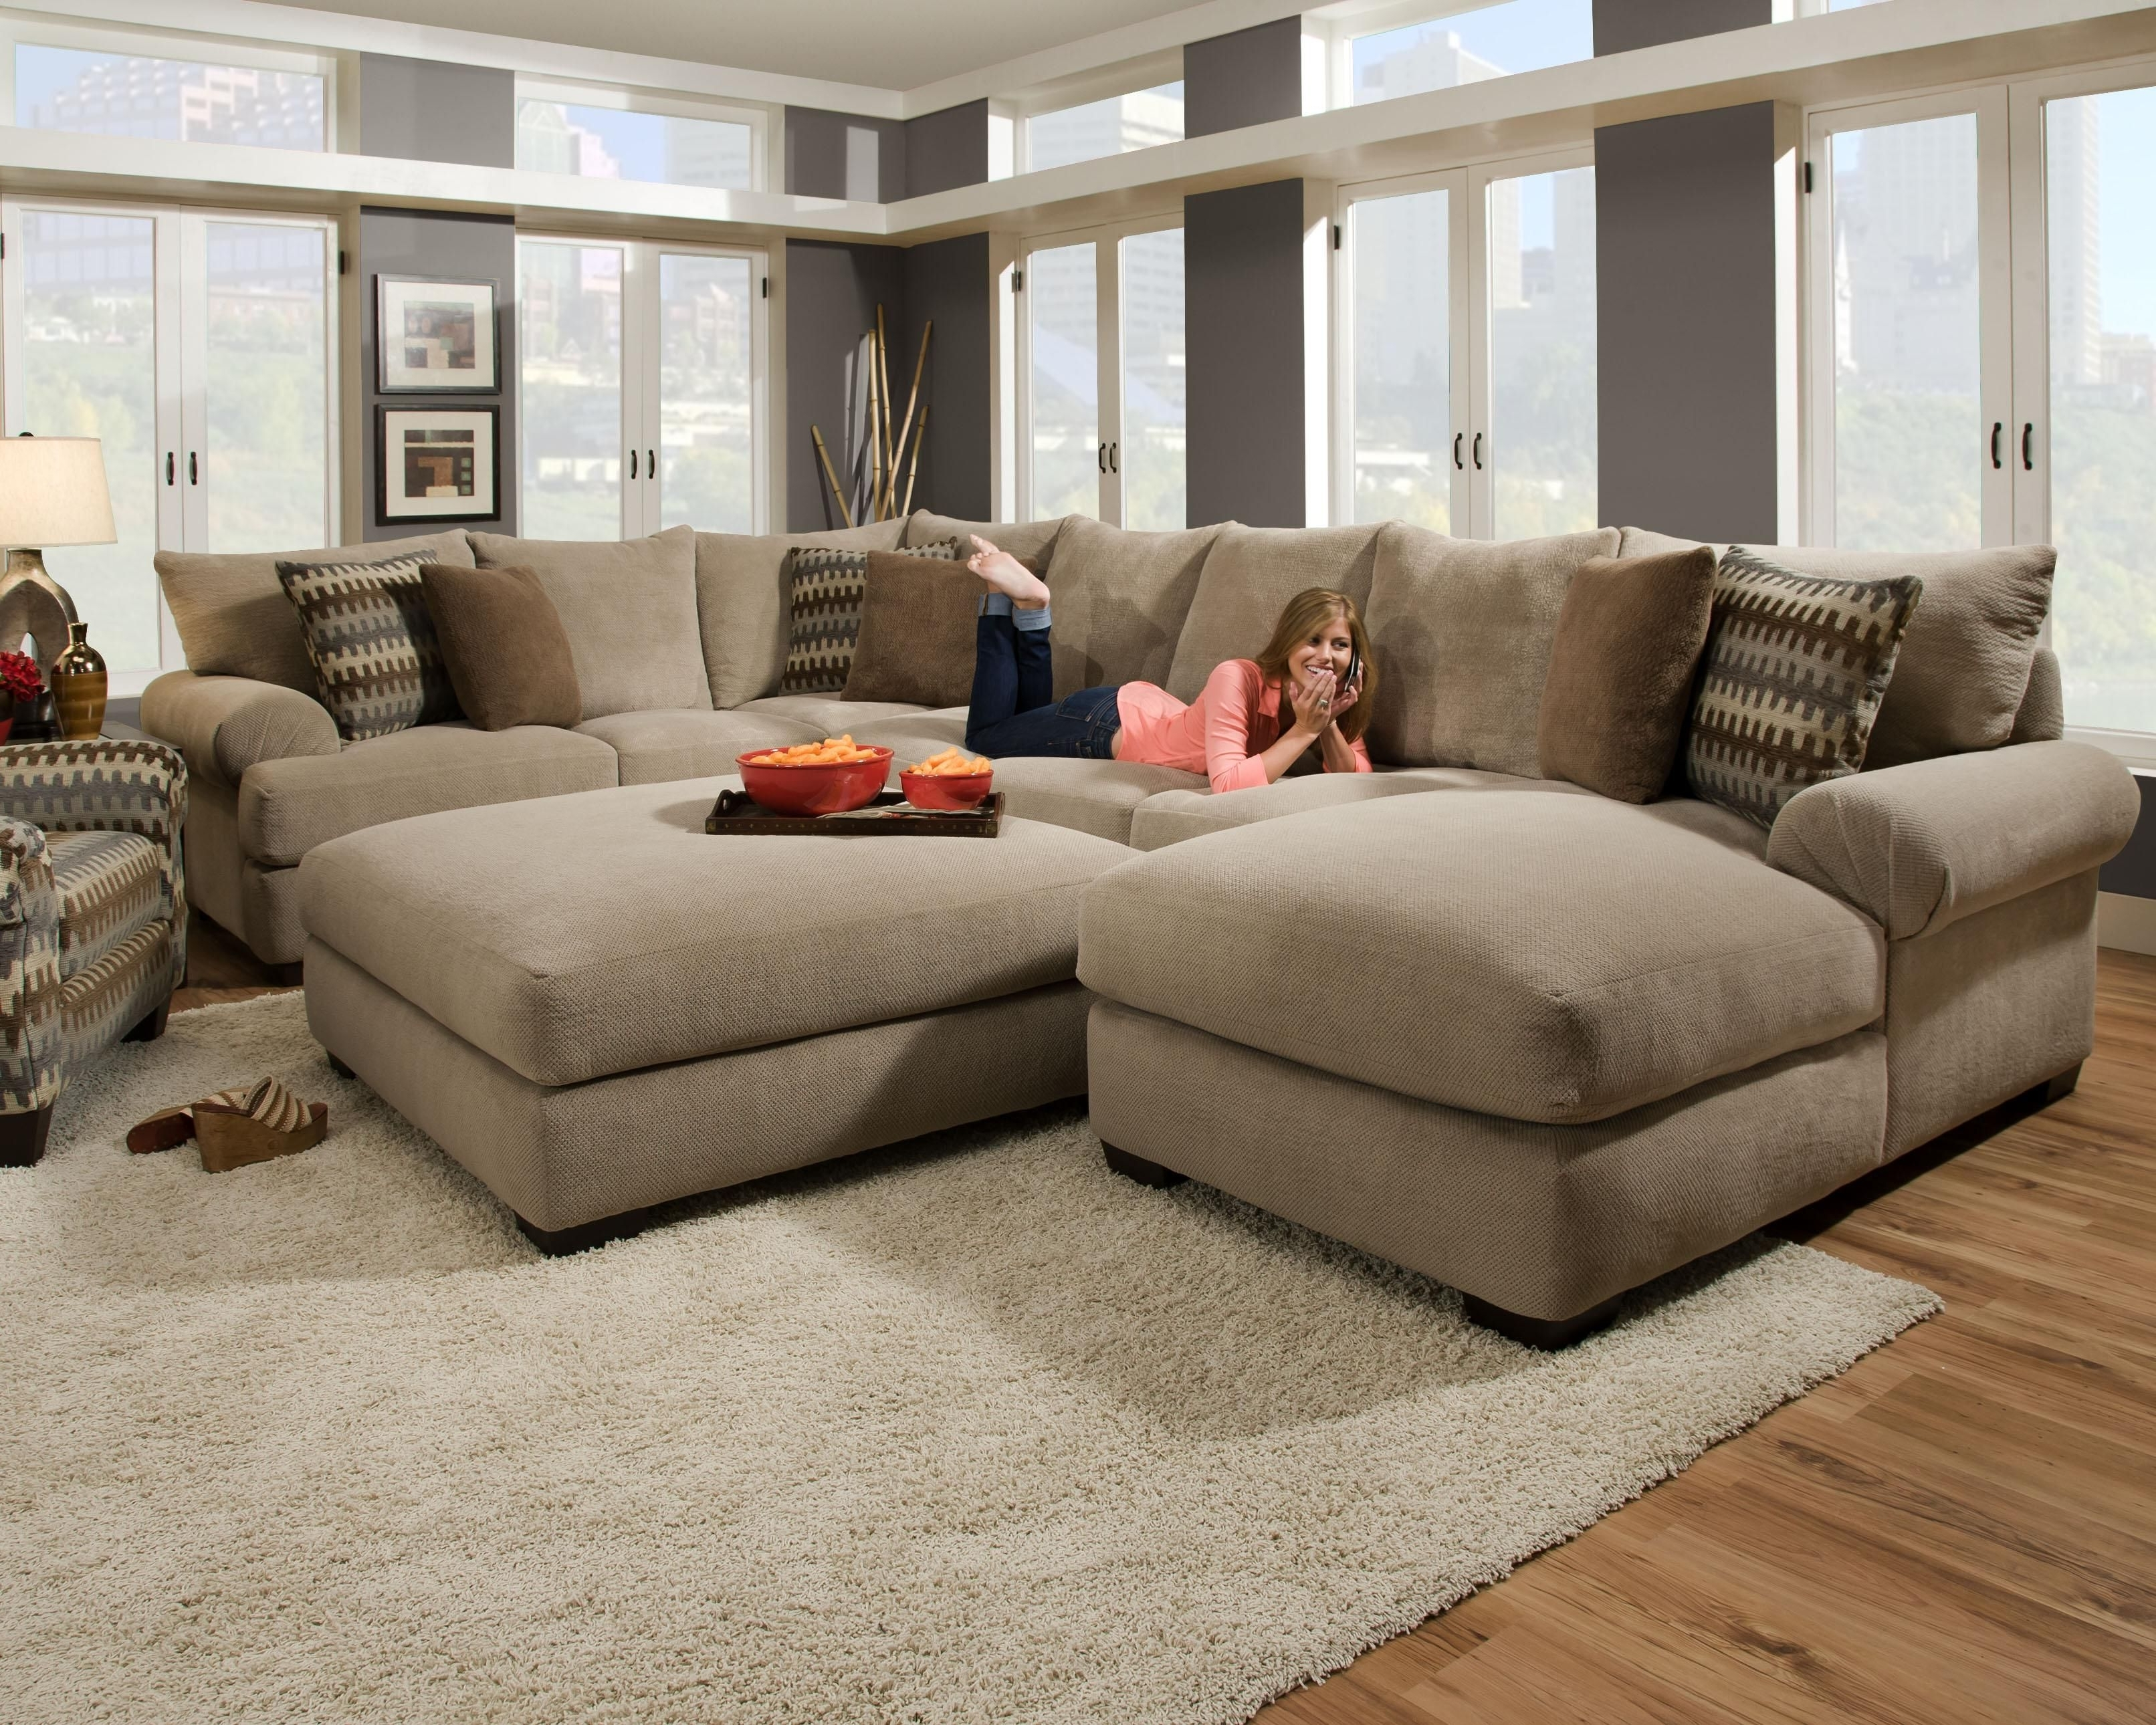 2019 Couches With Large Ottoman Inside Nice Oversized Couch , Epic Oversized Couch 78 For Your (View 1 of 20)